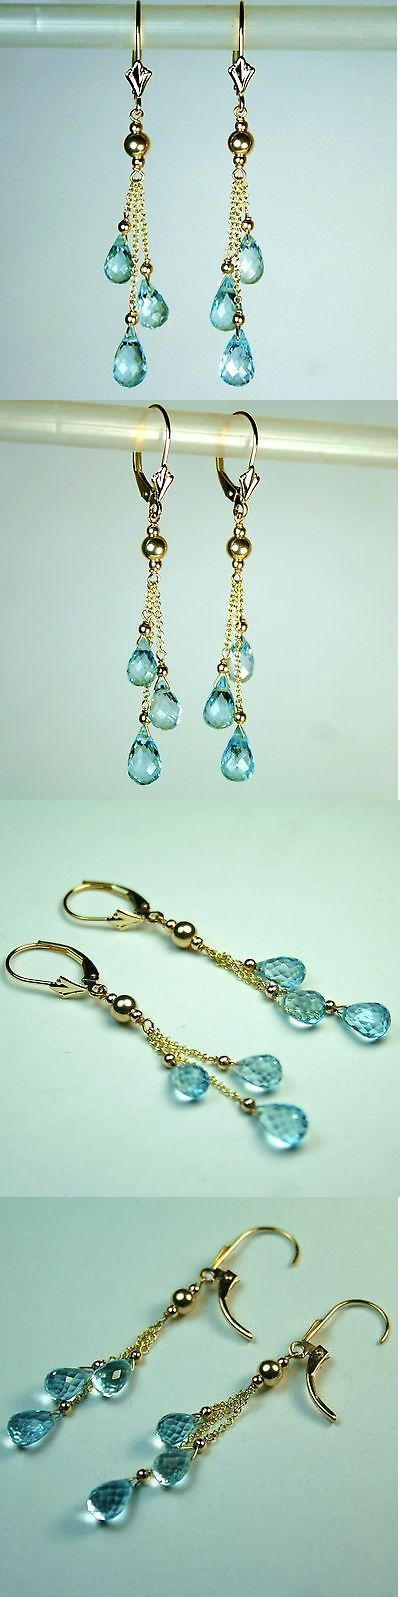 Gemstone 164321: 14K Solid Yellow Gold 7X5mm Briolette Natural Blue Topaz Earrings Leverback BUY IT NOW ONLY: $83.0